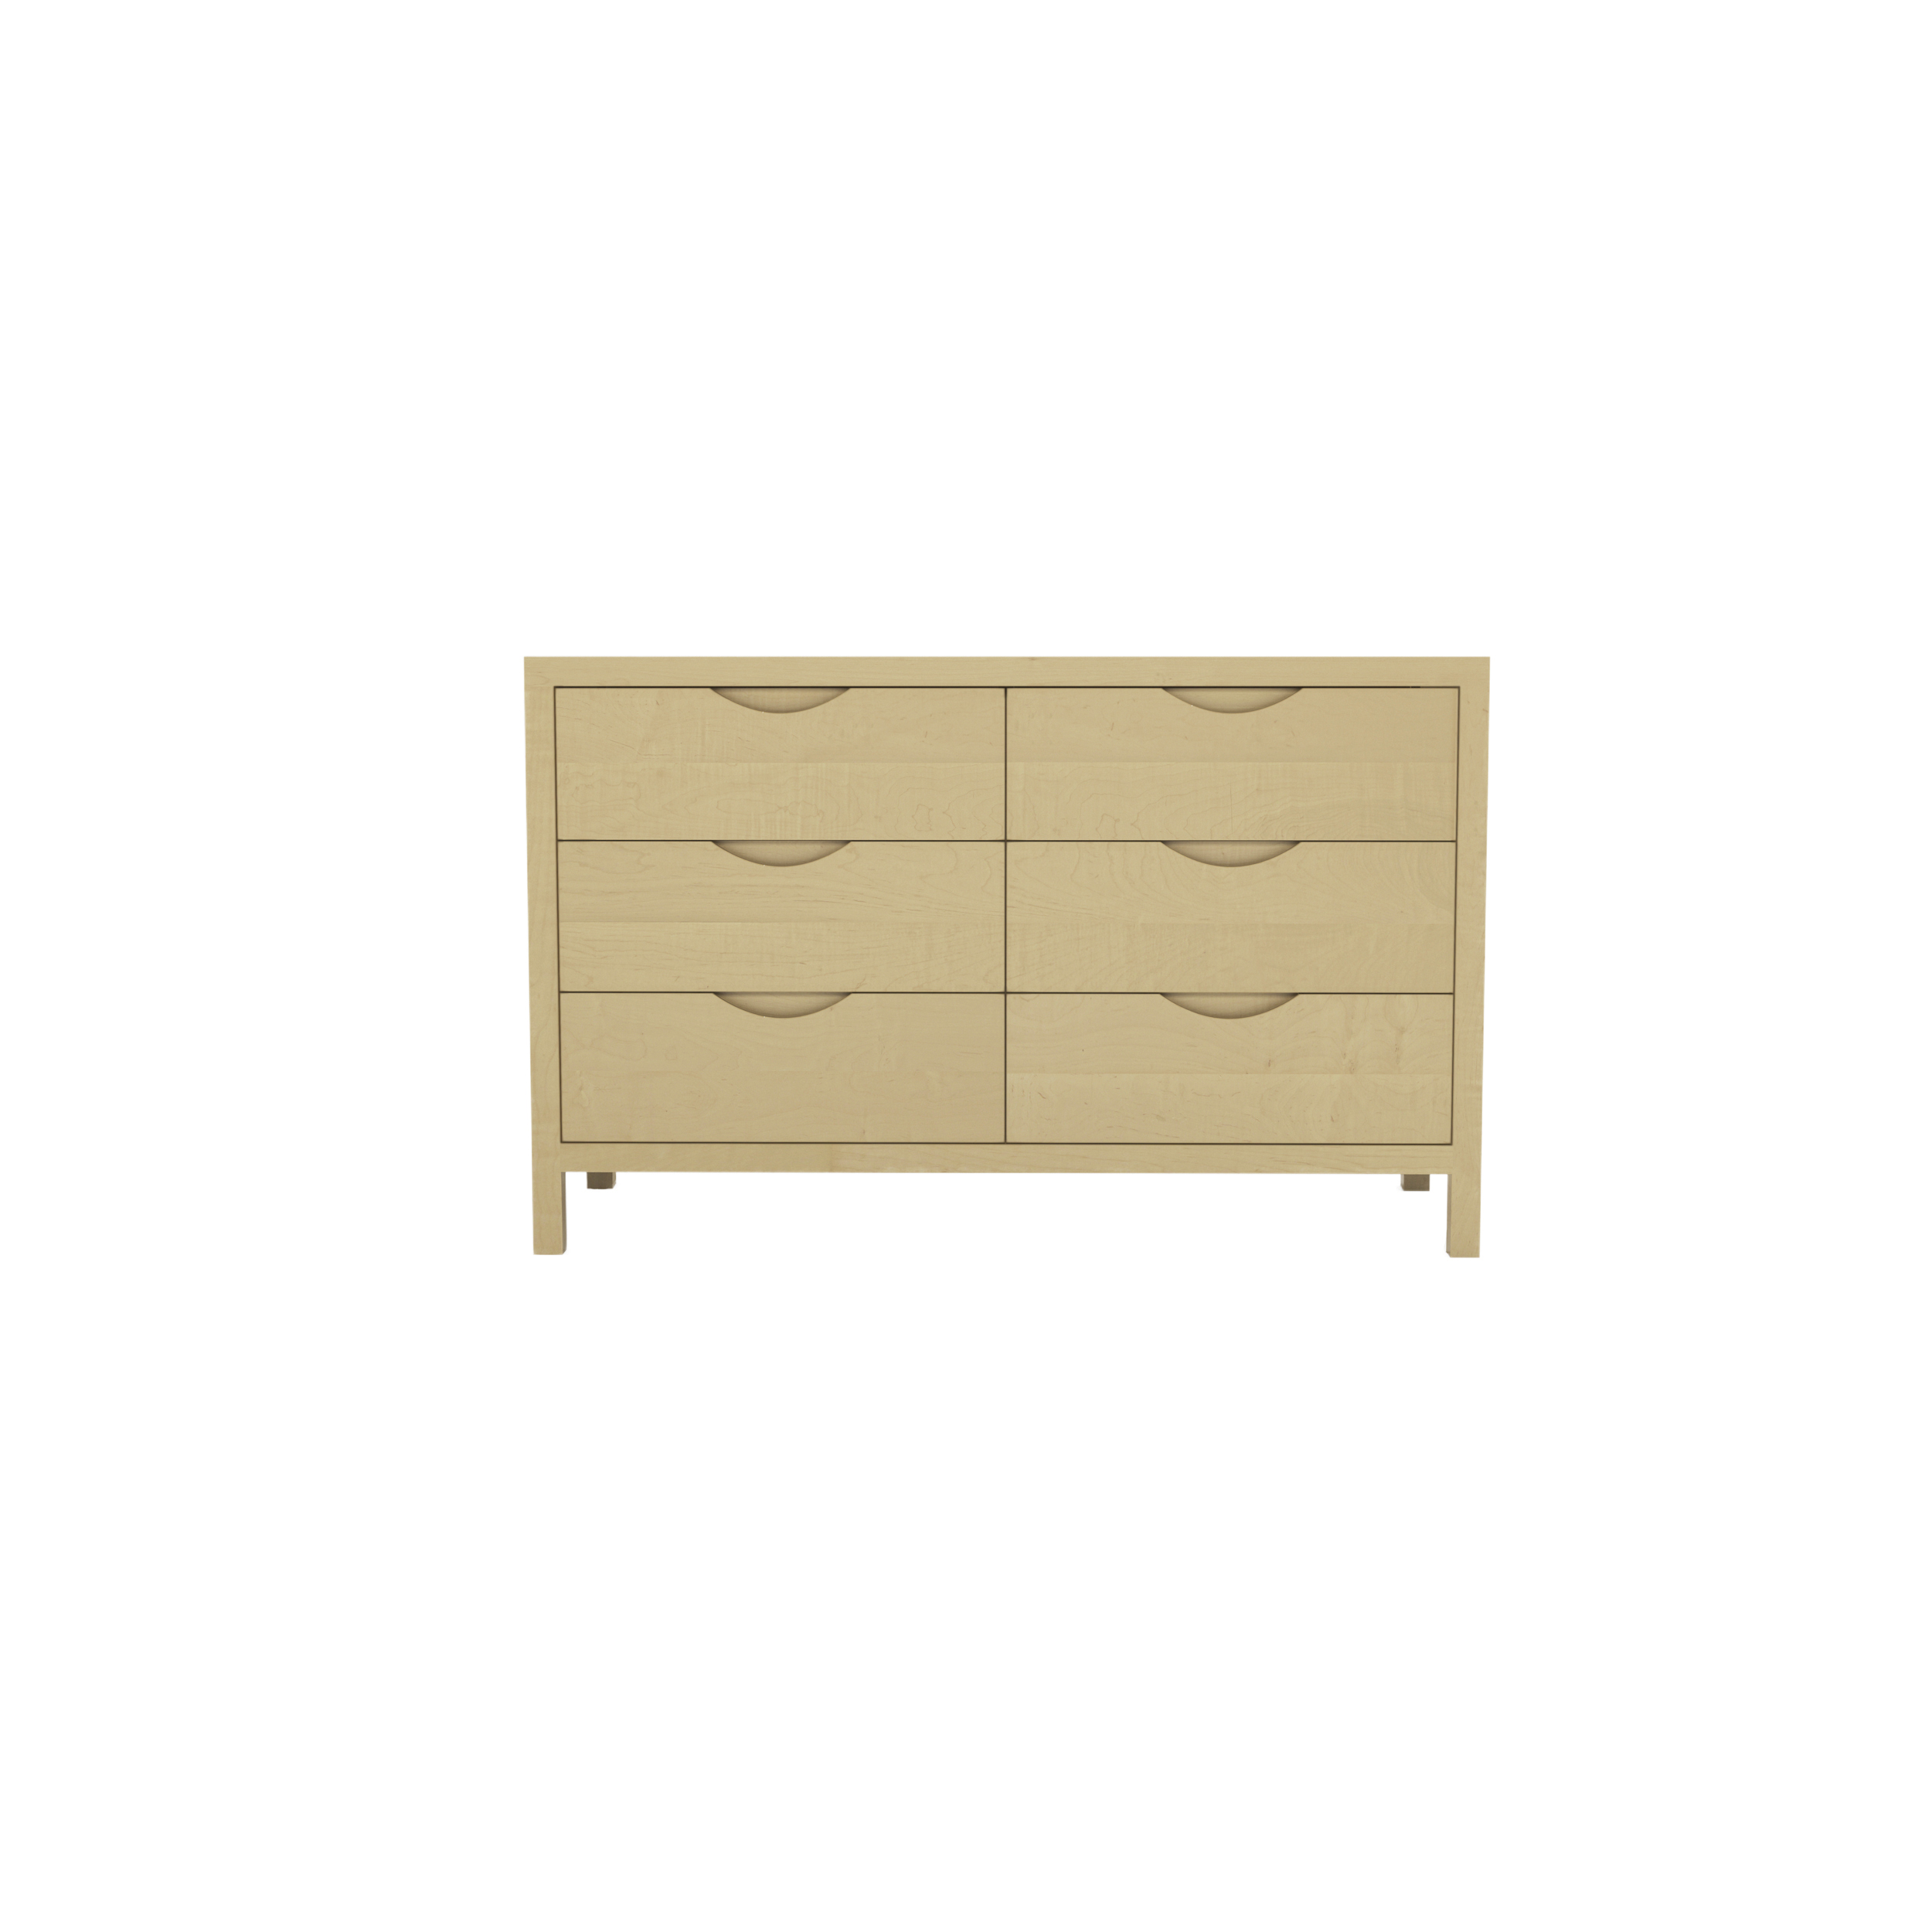 Series 353 Dresser With Six Drawers At 48″ In Width